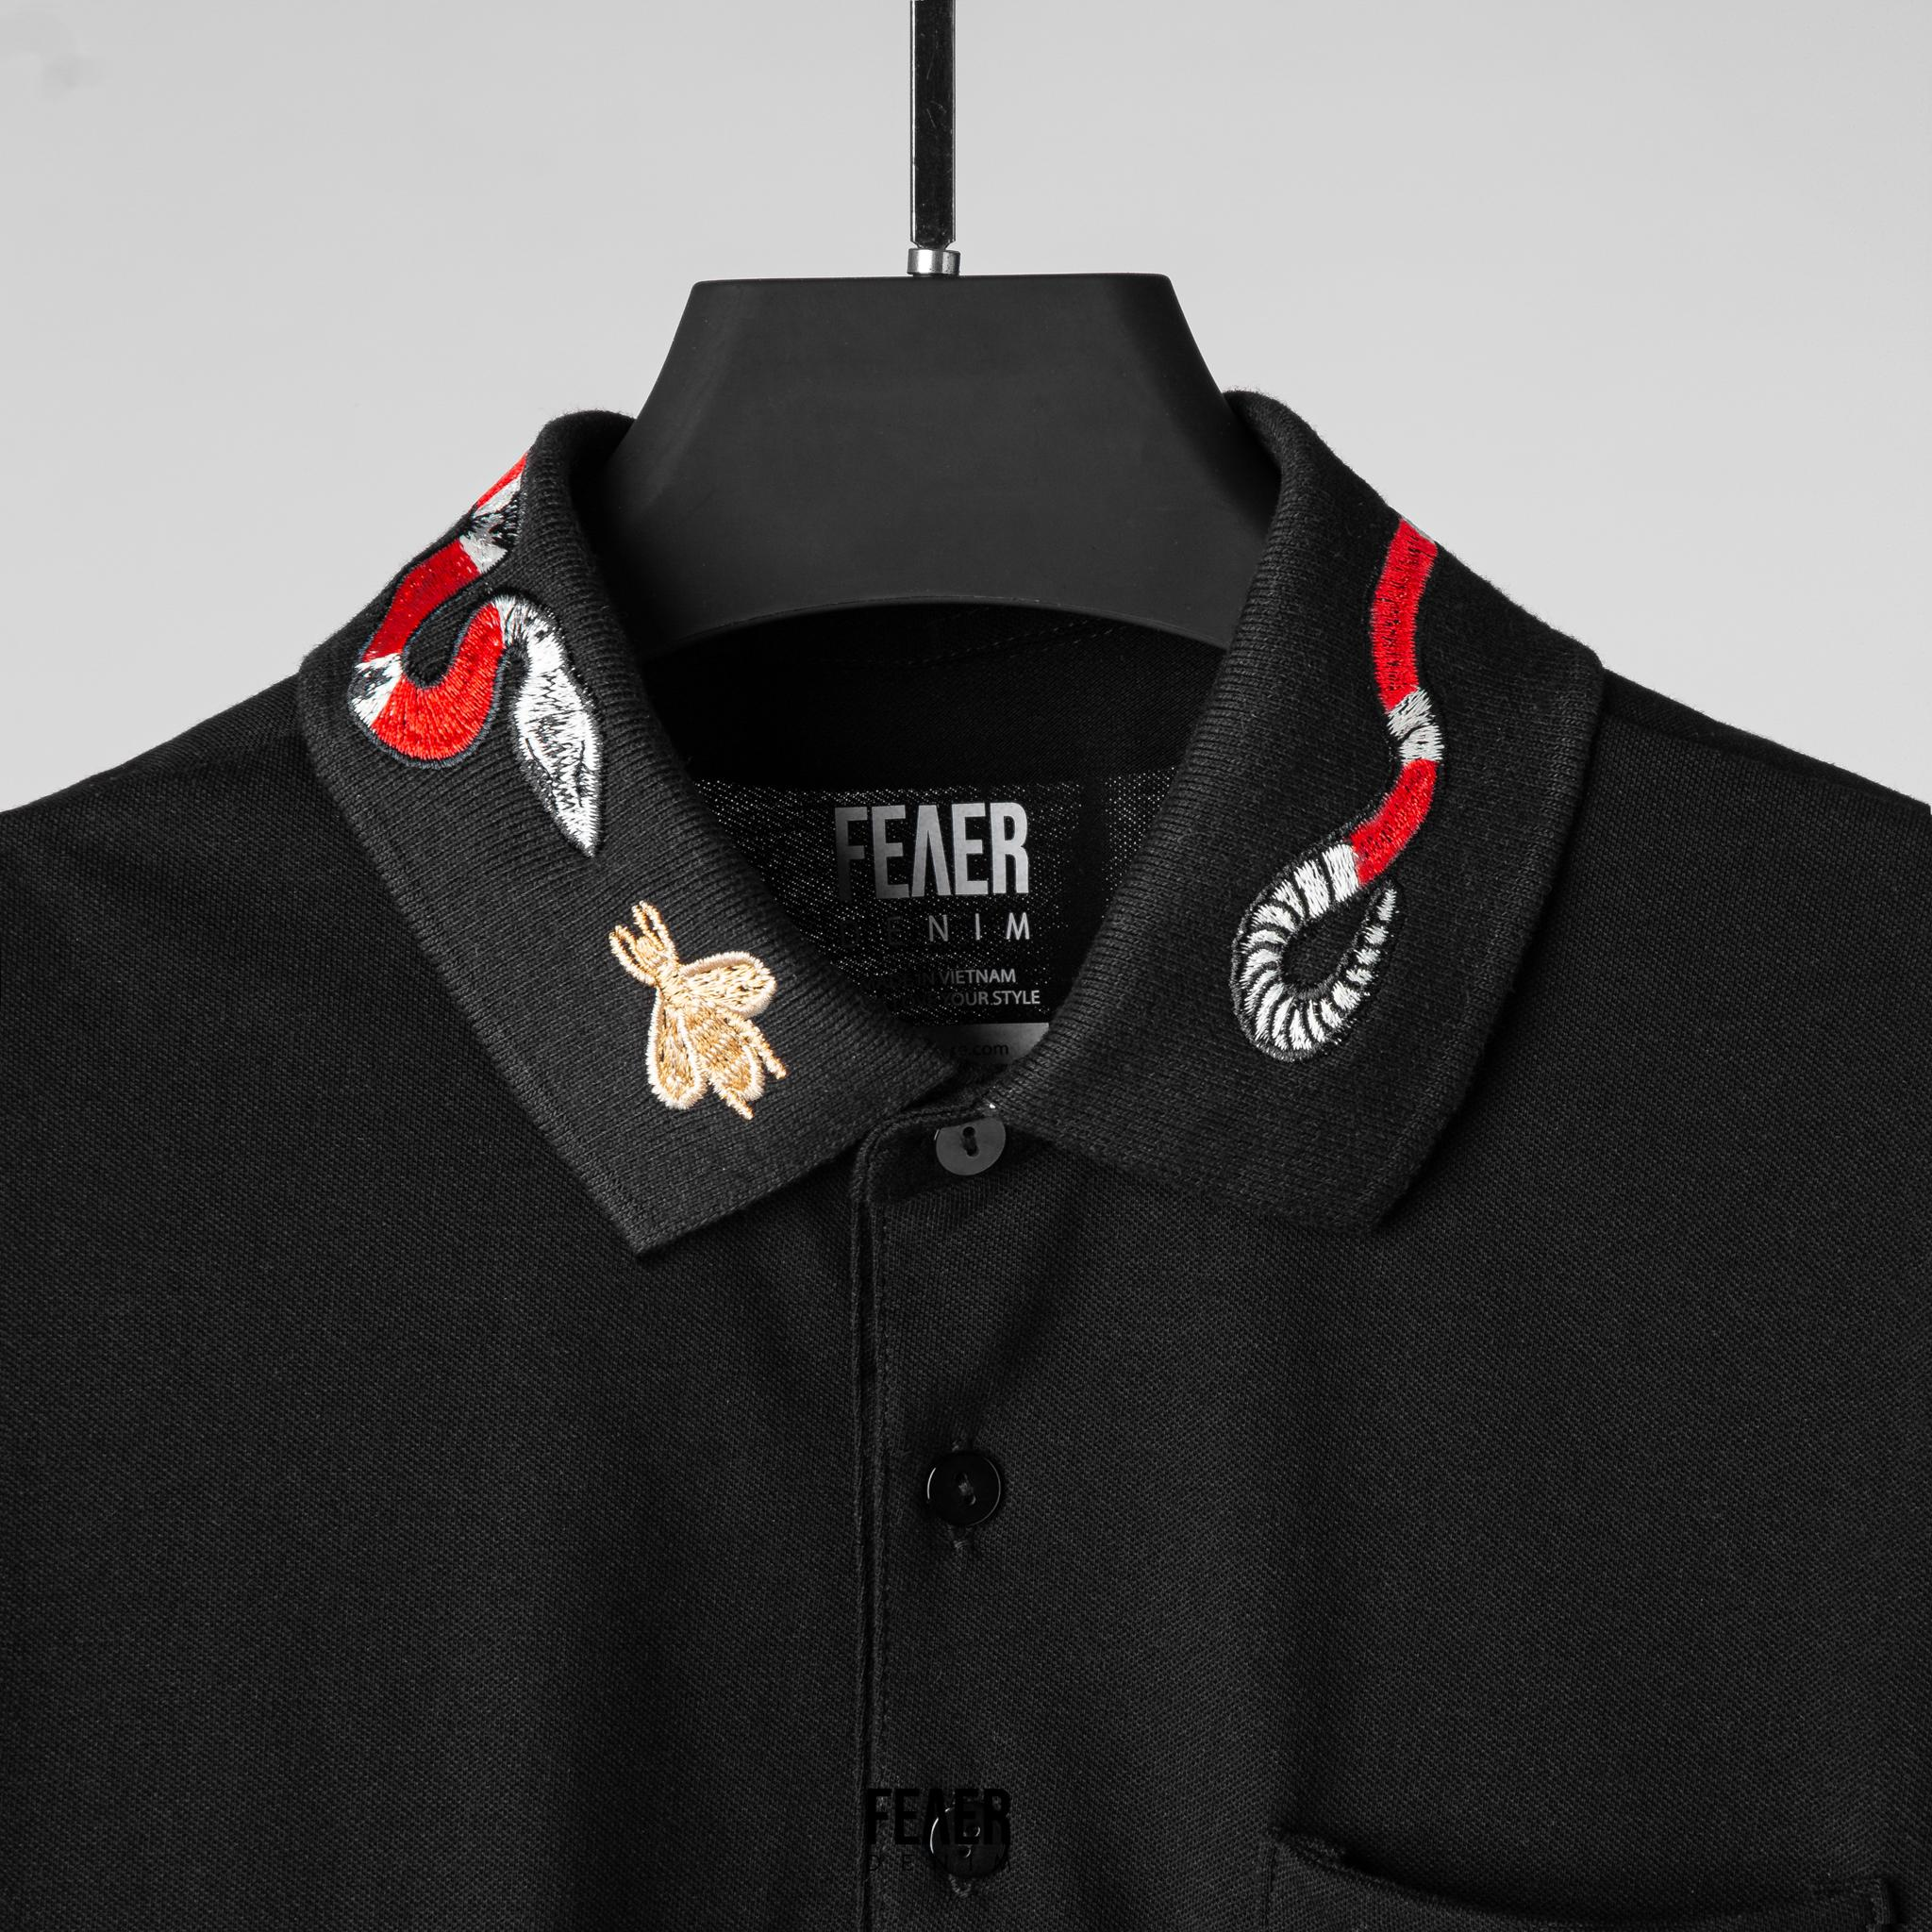 SP182 - Áo Polo Embroidered Collar